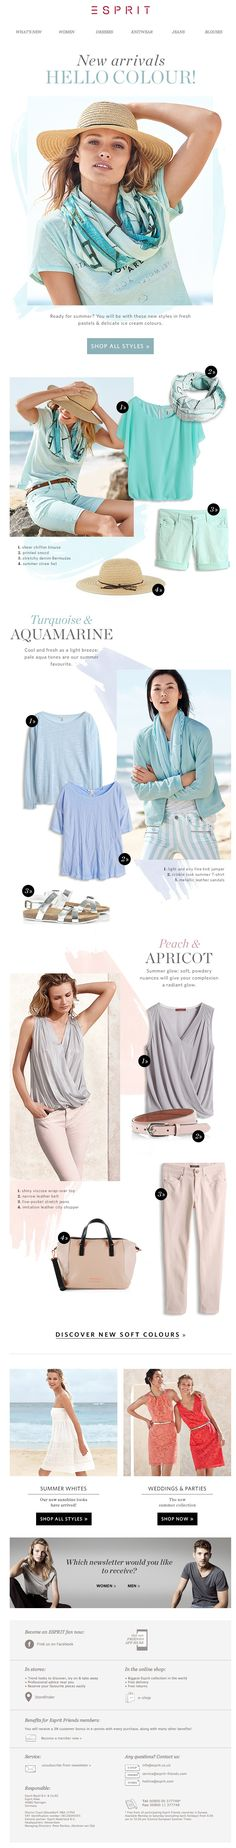 #newsletter Esprit 05.2014 NEW IN for summer! We ♥ the new pastels